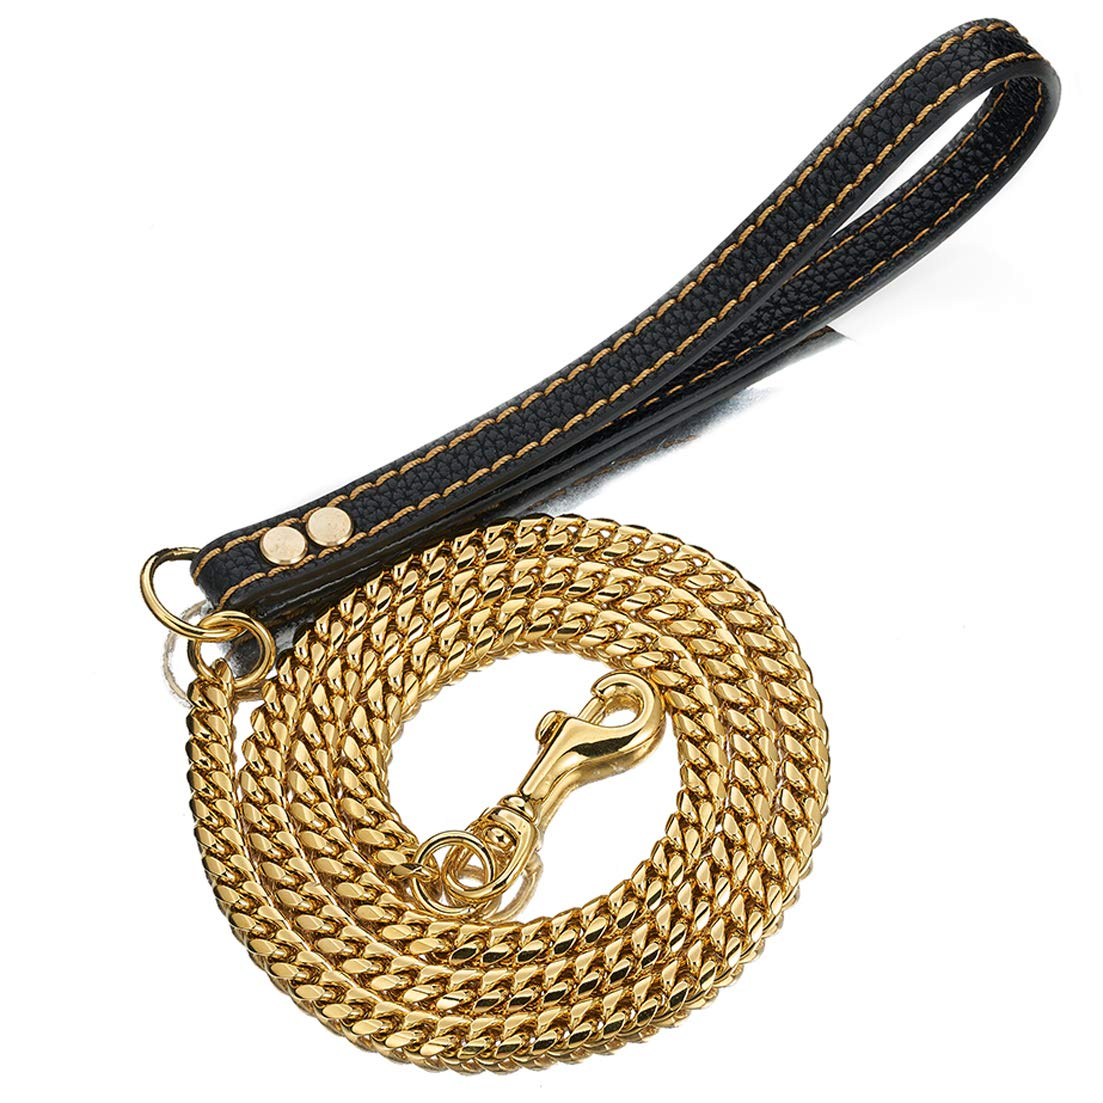 Aiyidi Pet Dog Strong Leash Long 2FT 3FT 4FT 18K Gold Metal 12mm Curb Cuban Chain Dog Leashes with Comfortable Genuine Leather Handle (Gold,48inch)